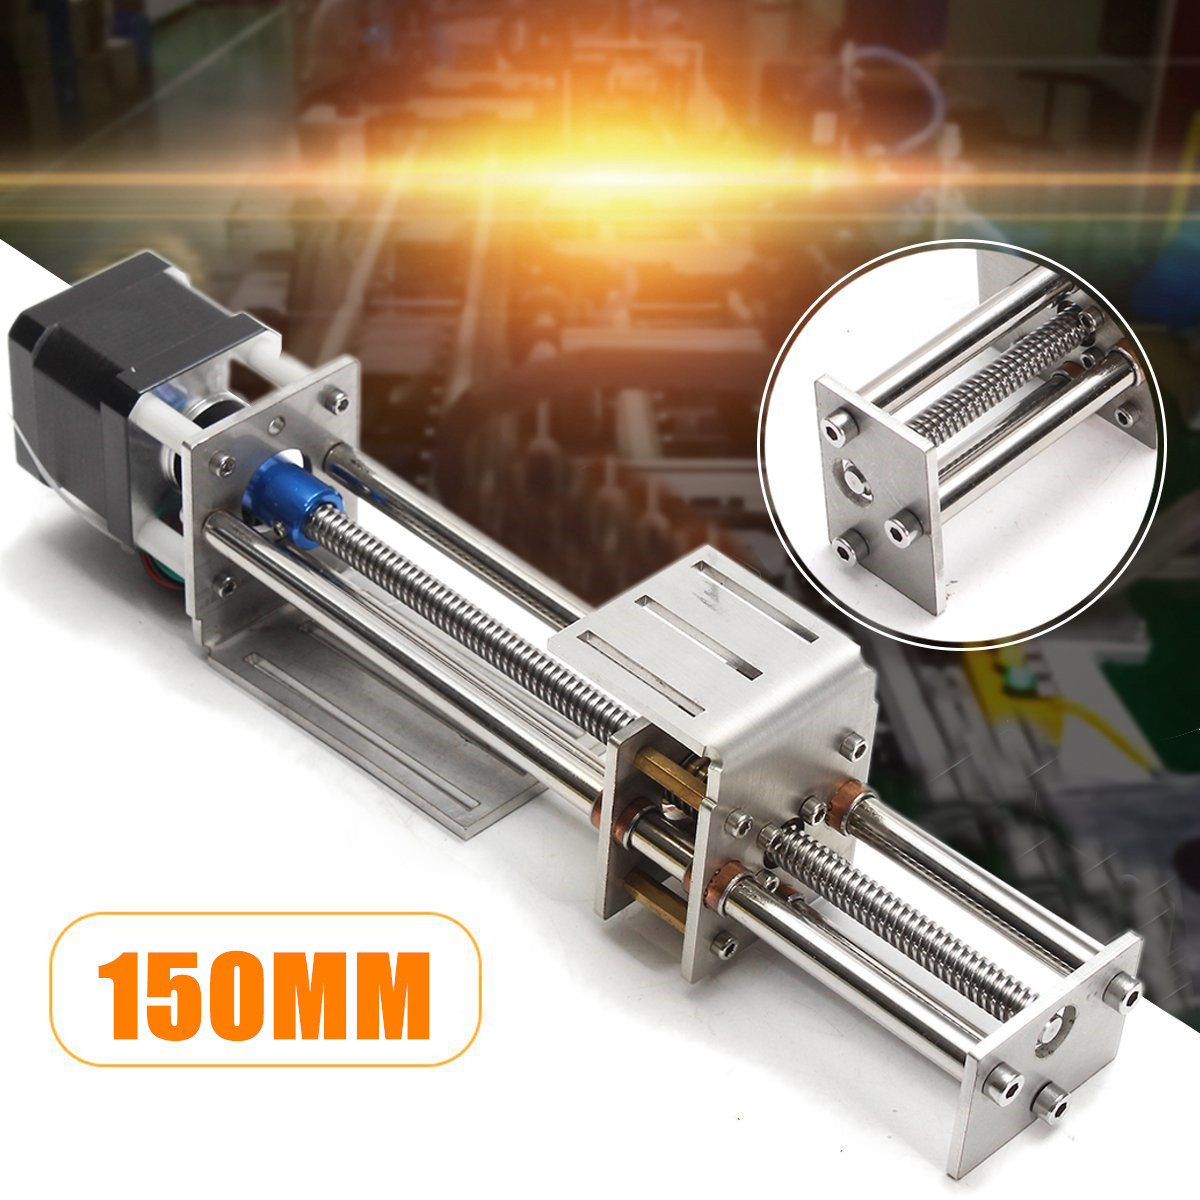 Mini 150MM CNC Z Axis Slide DIY Linear Motion Milling 3 Axis Engraving Machine With a Stepper Motor For Reprap Engraving Machine funssor 50mm 150mm slide stroke cnc z axis slide linear motion nema17 stepper motor for reprap engraving machine